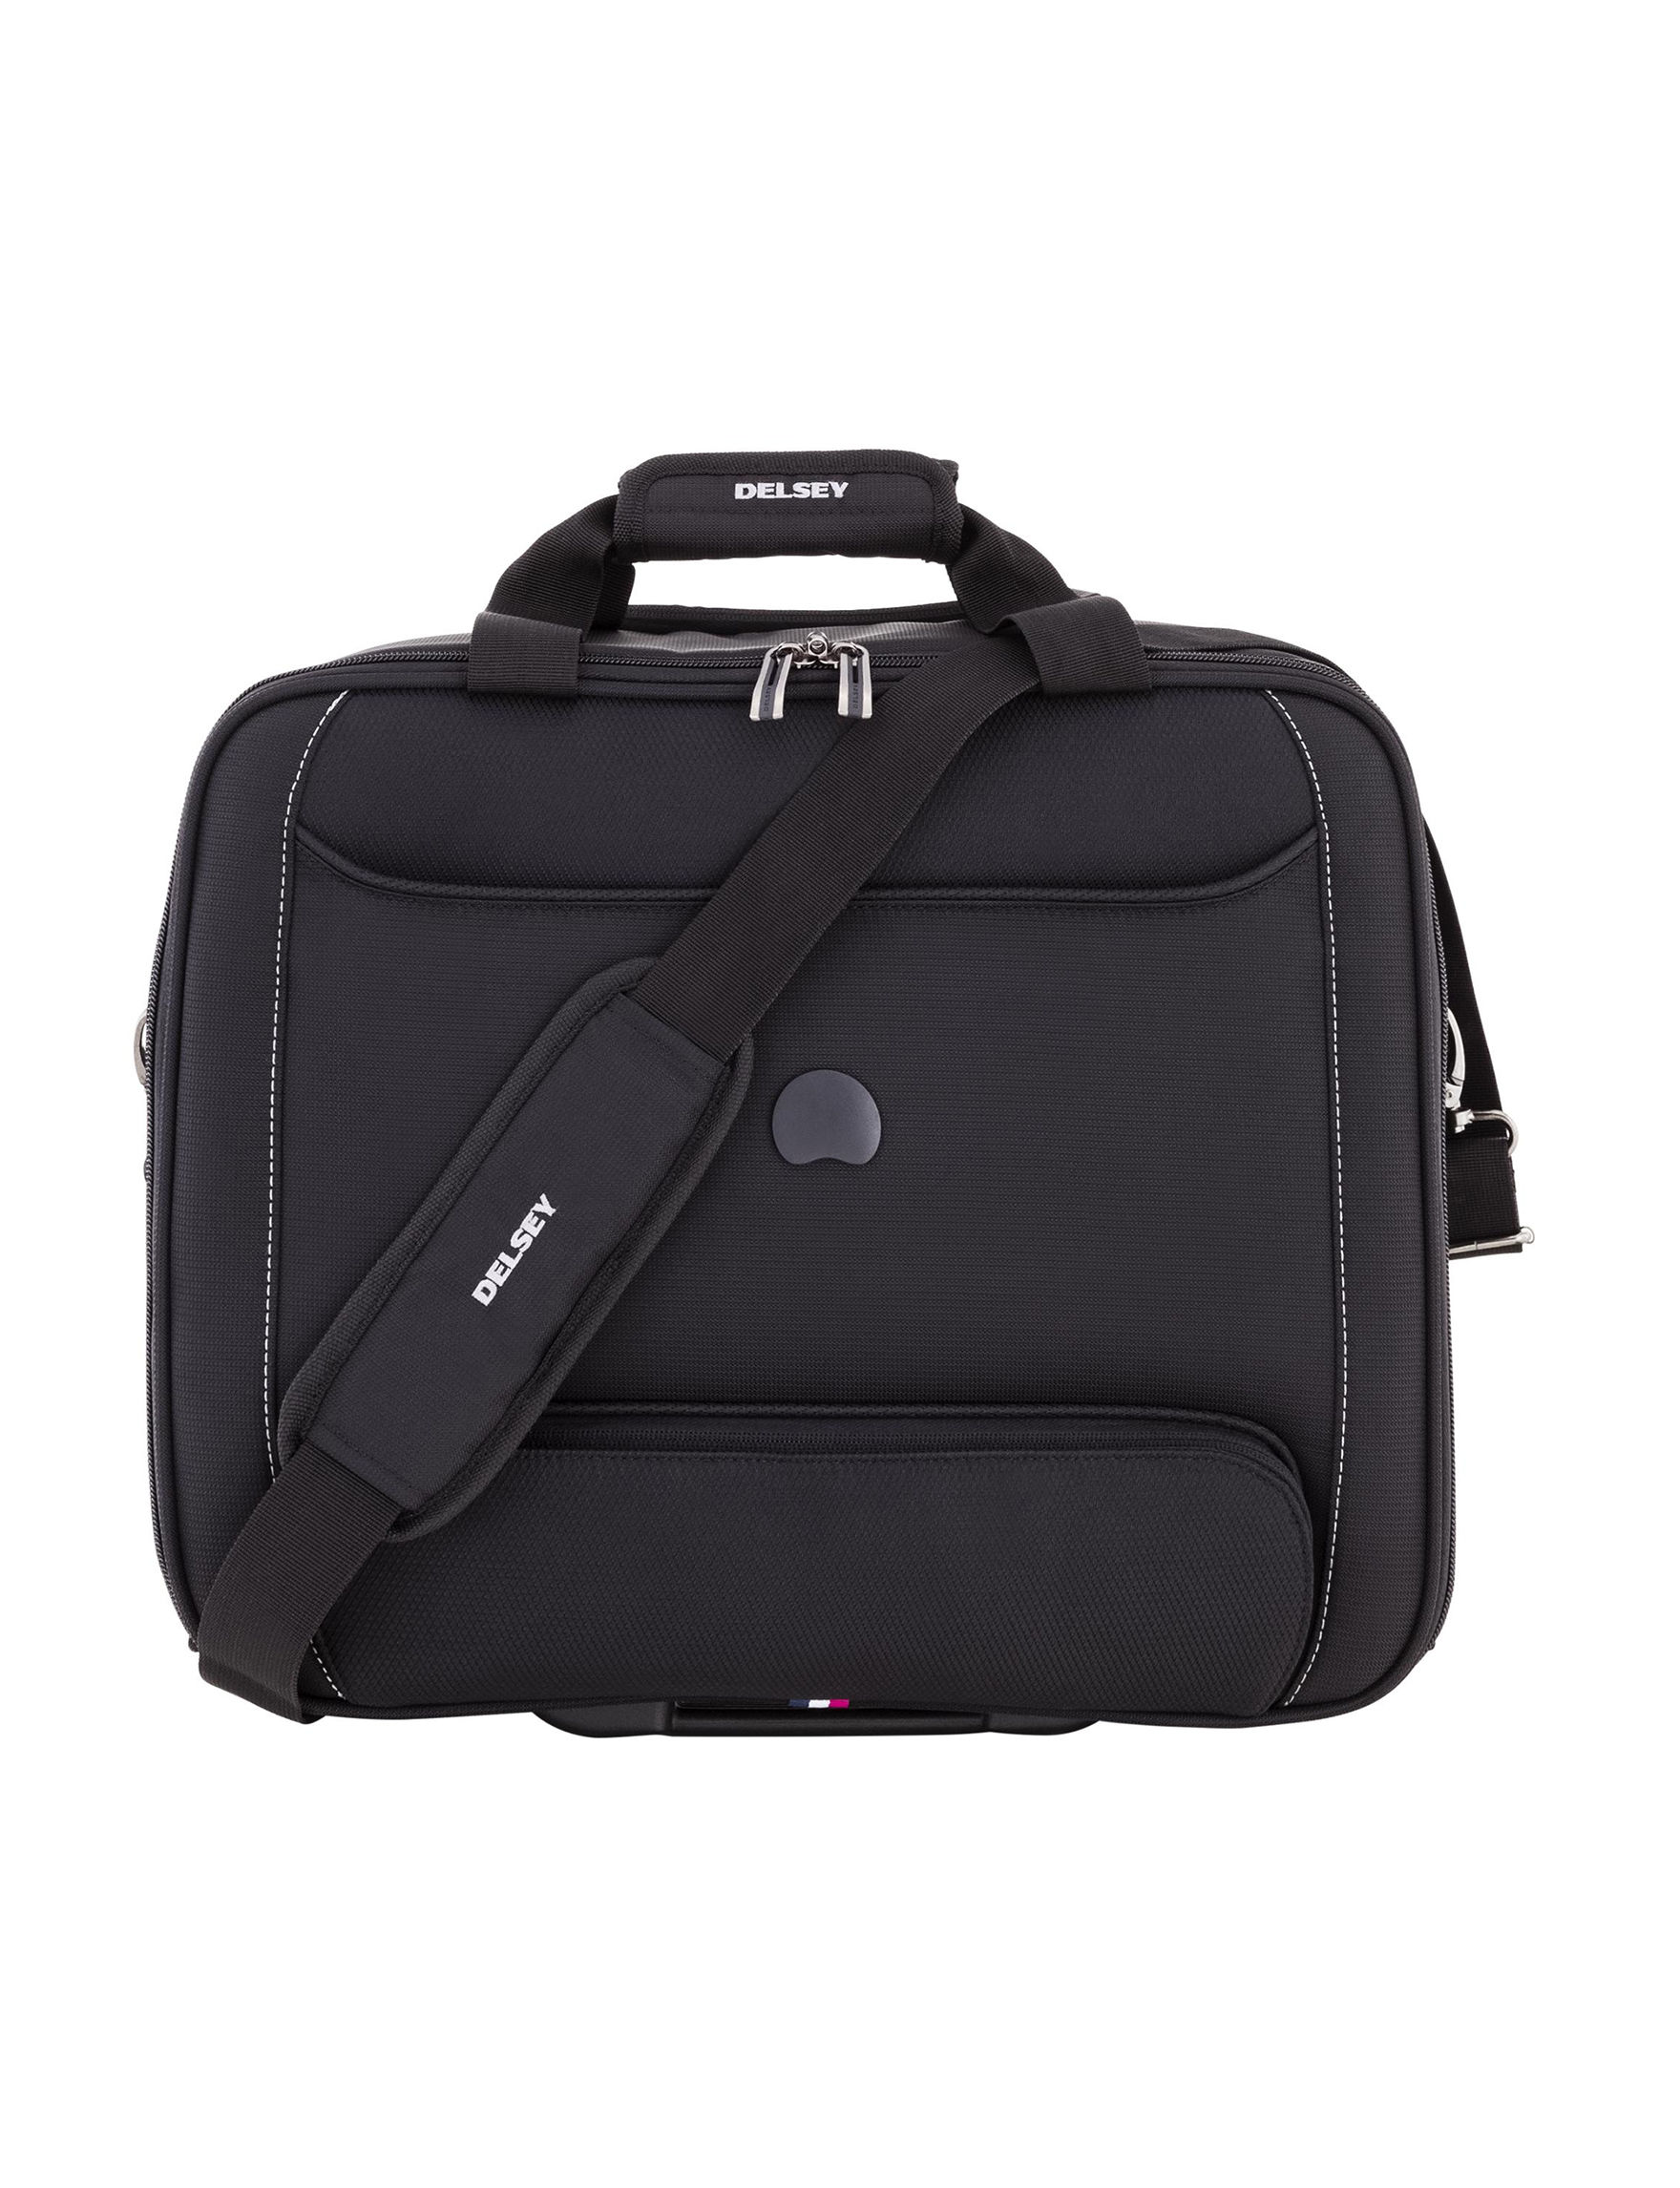 Delsey Black Carry On Luggage